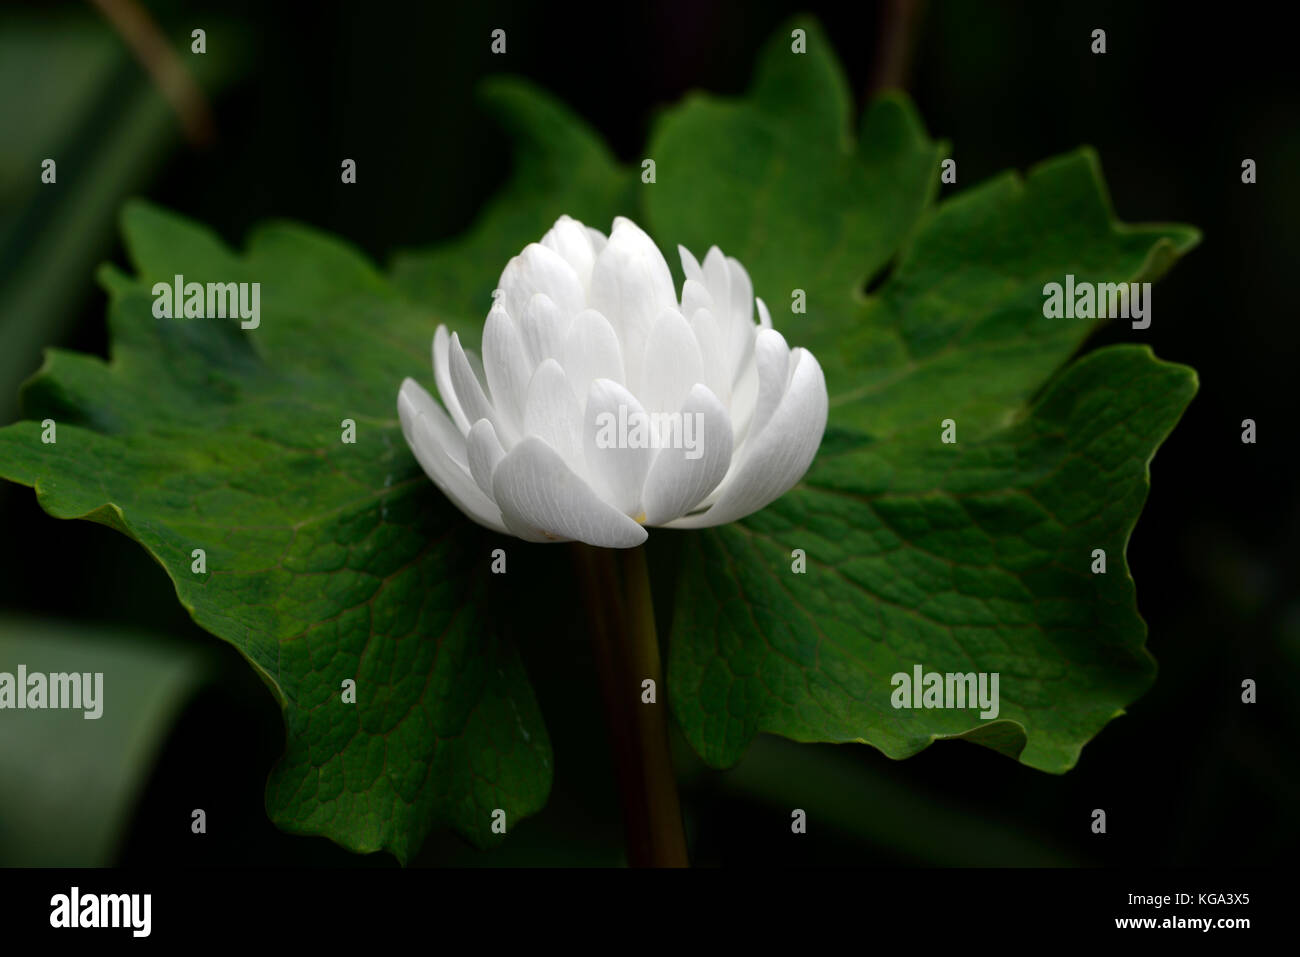 sanguinaria canadensis multiplex, bloodroot, white, flowers, flower, double, flowering, bloom, blossoms, plant portraits, - Stock Image